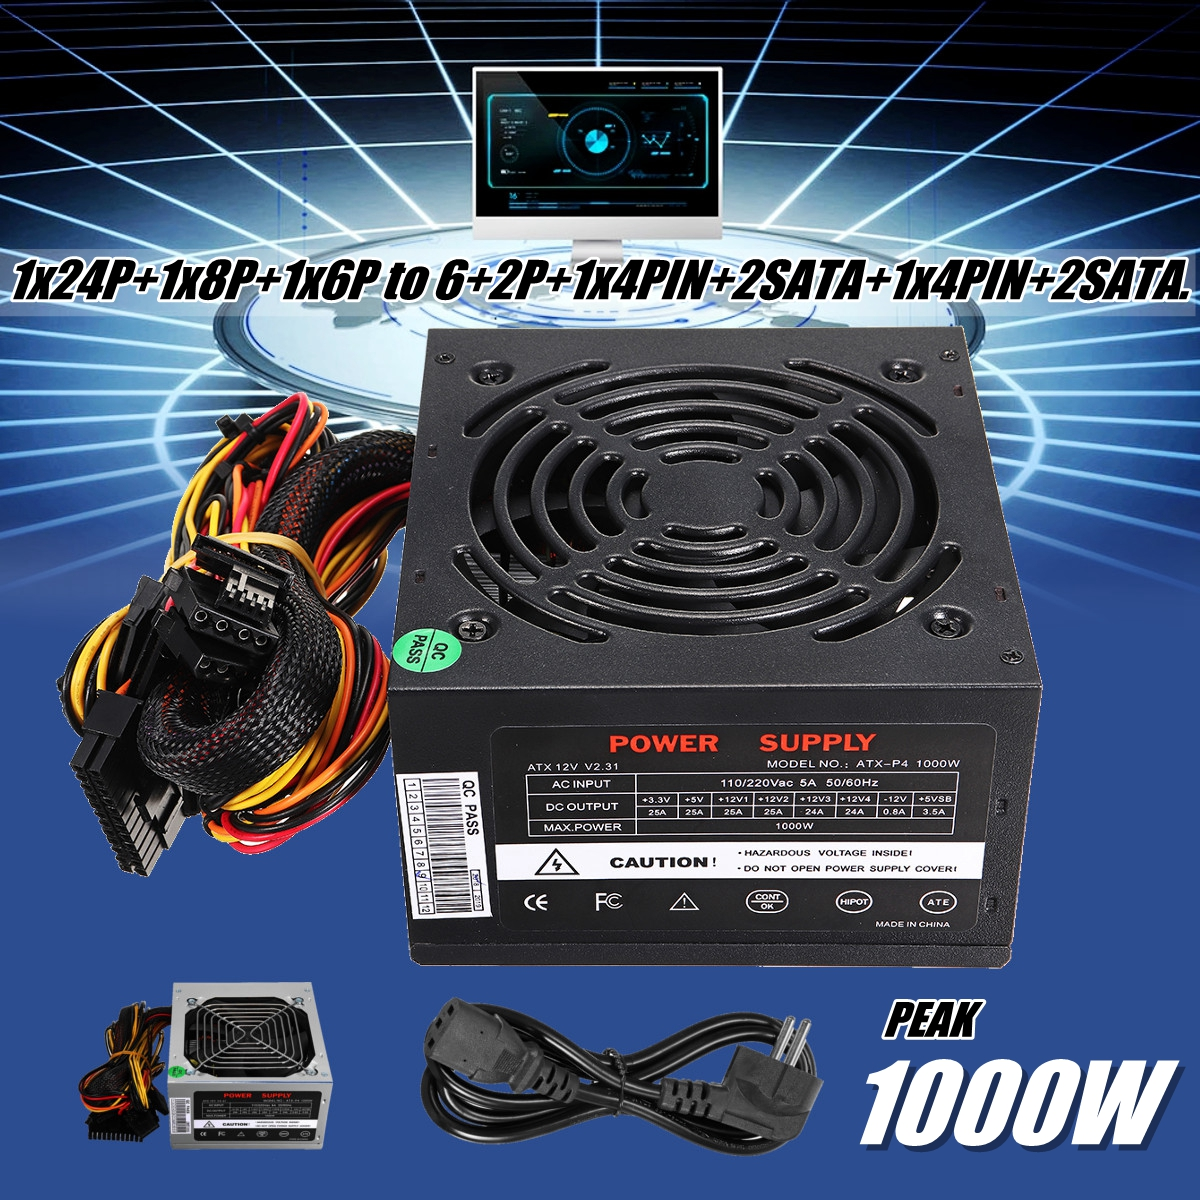 Black 1000W Power Supply PSU PFC Silent Fan ATX 24pin 12V PC Computer SATA Gaming PC Power Supply For Intel AMD Computer silver max 500w psu pfc atx 12v 24pin sata gaming pc power supply for intel amd computer power supply for btc